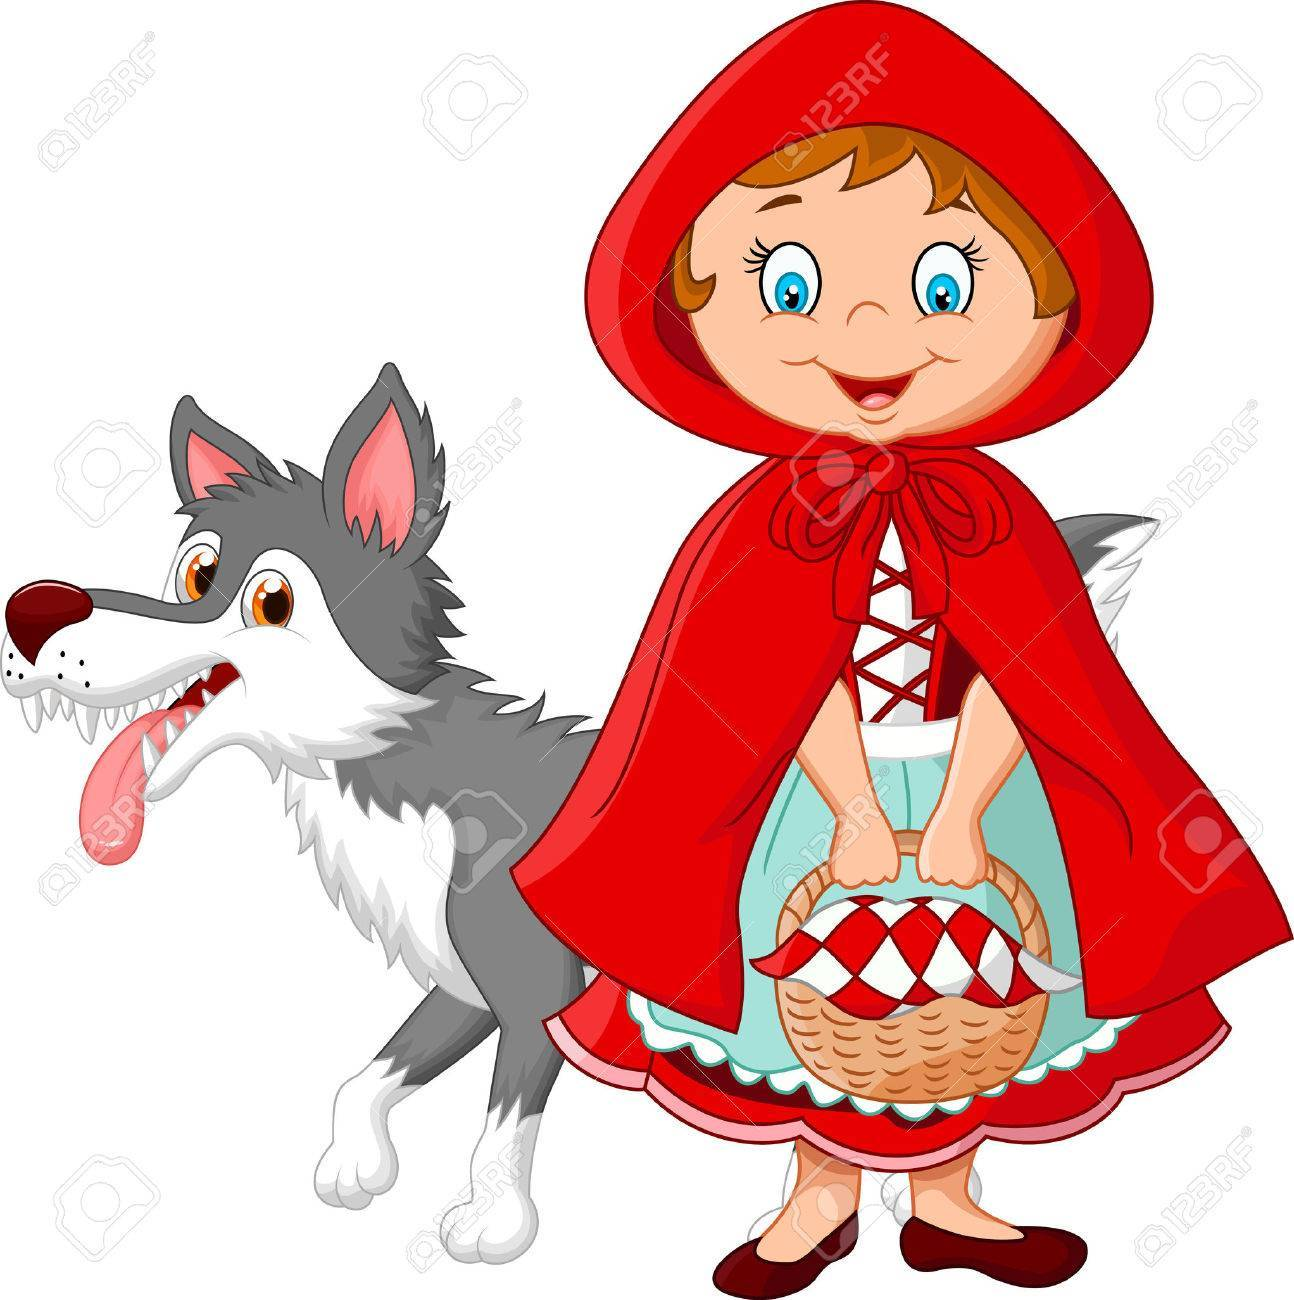 Little red riding hood clipart 7 » Clipart Portal.